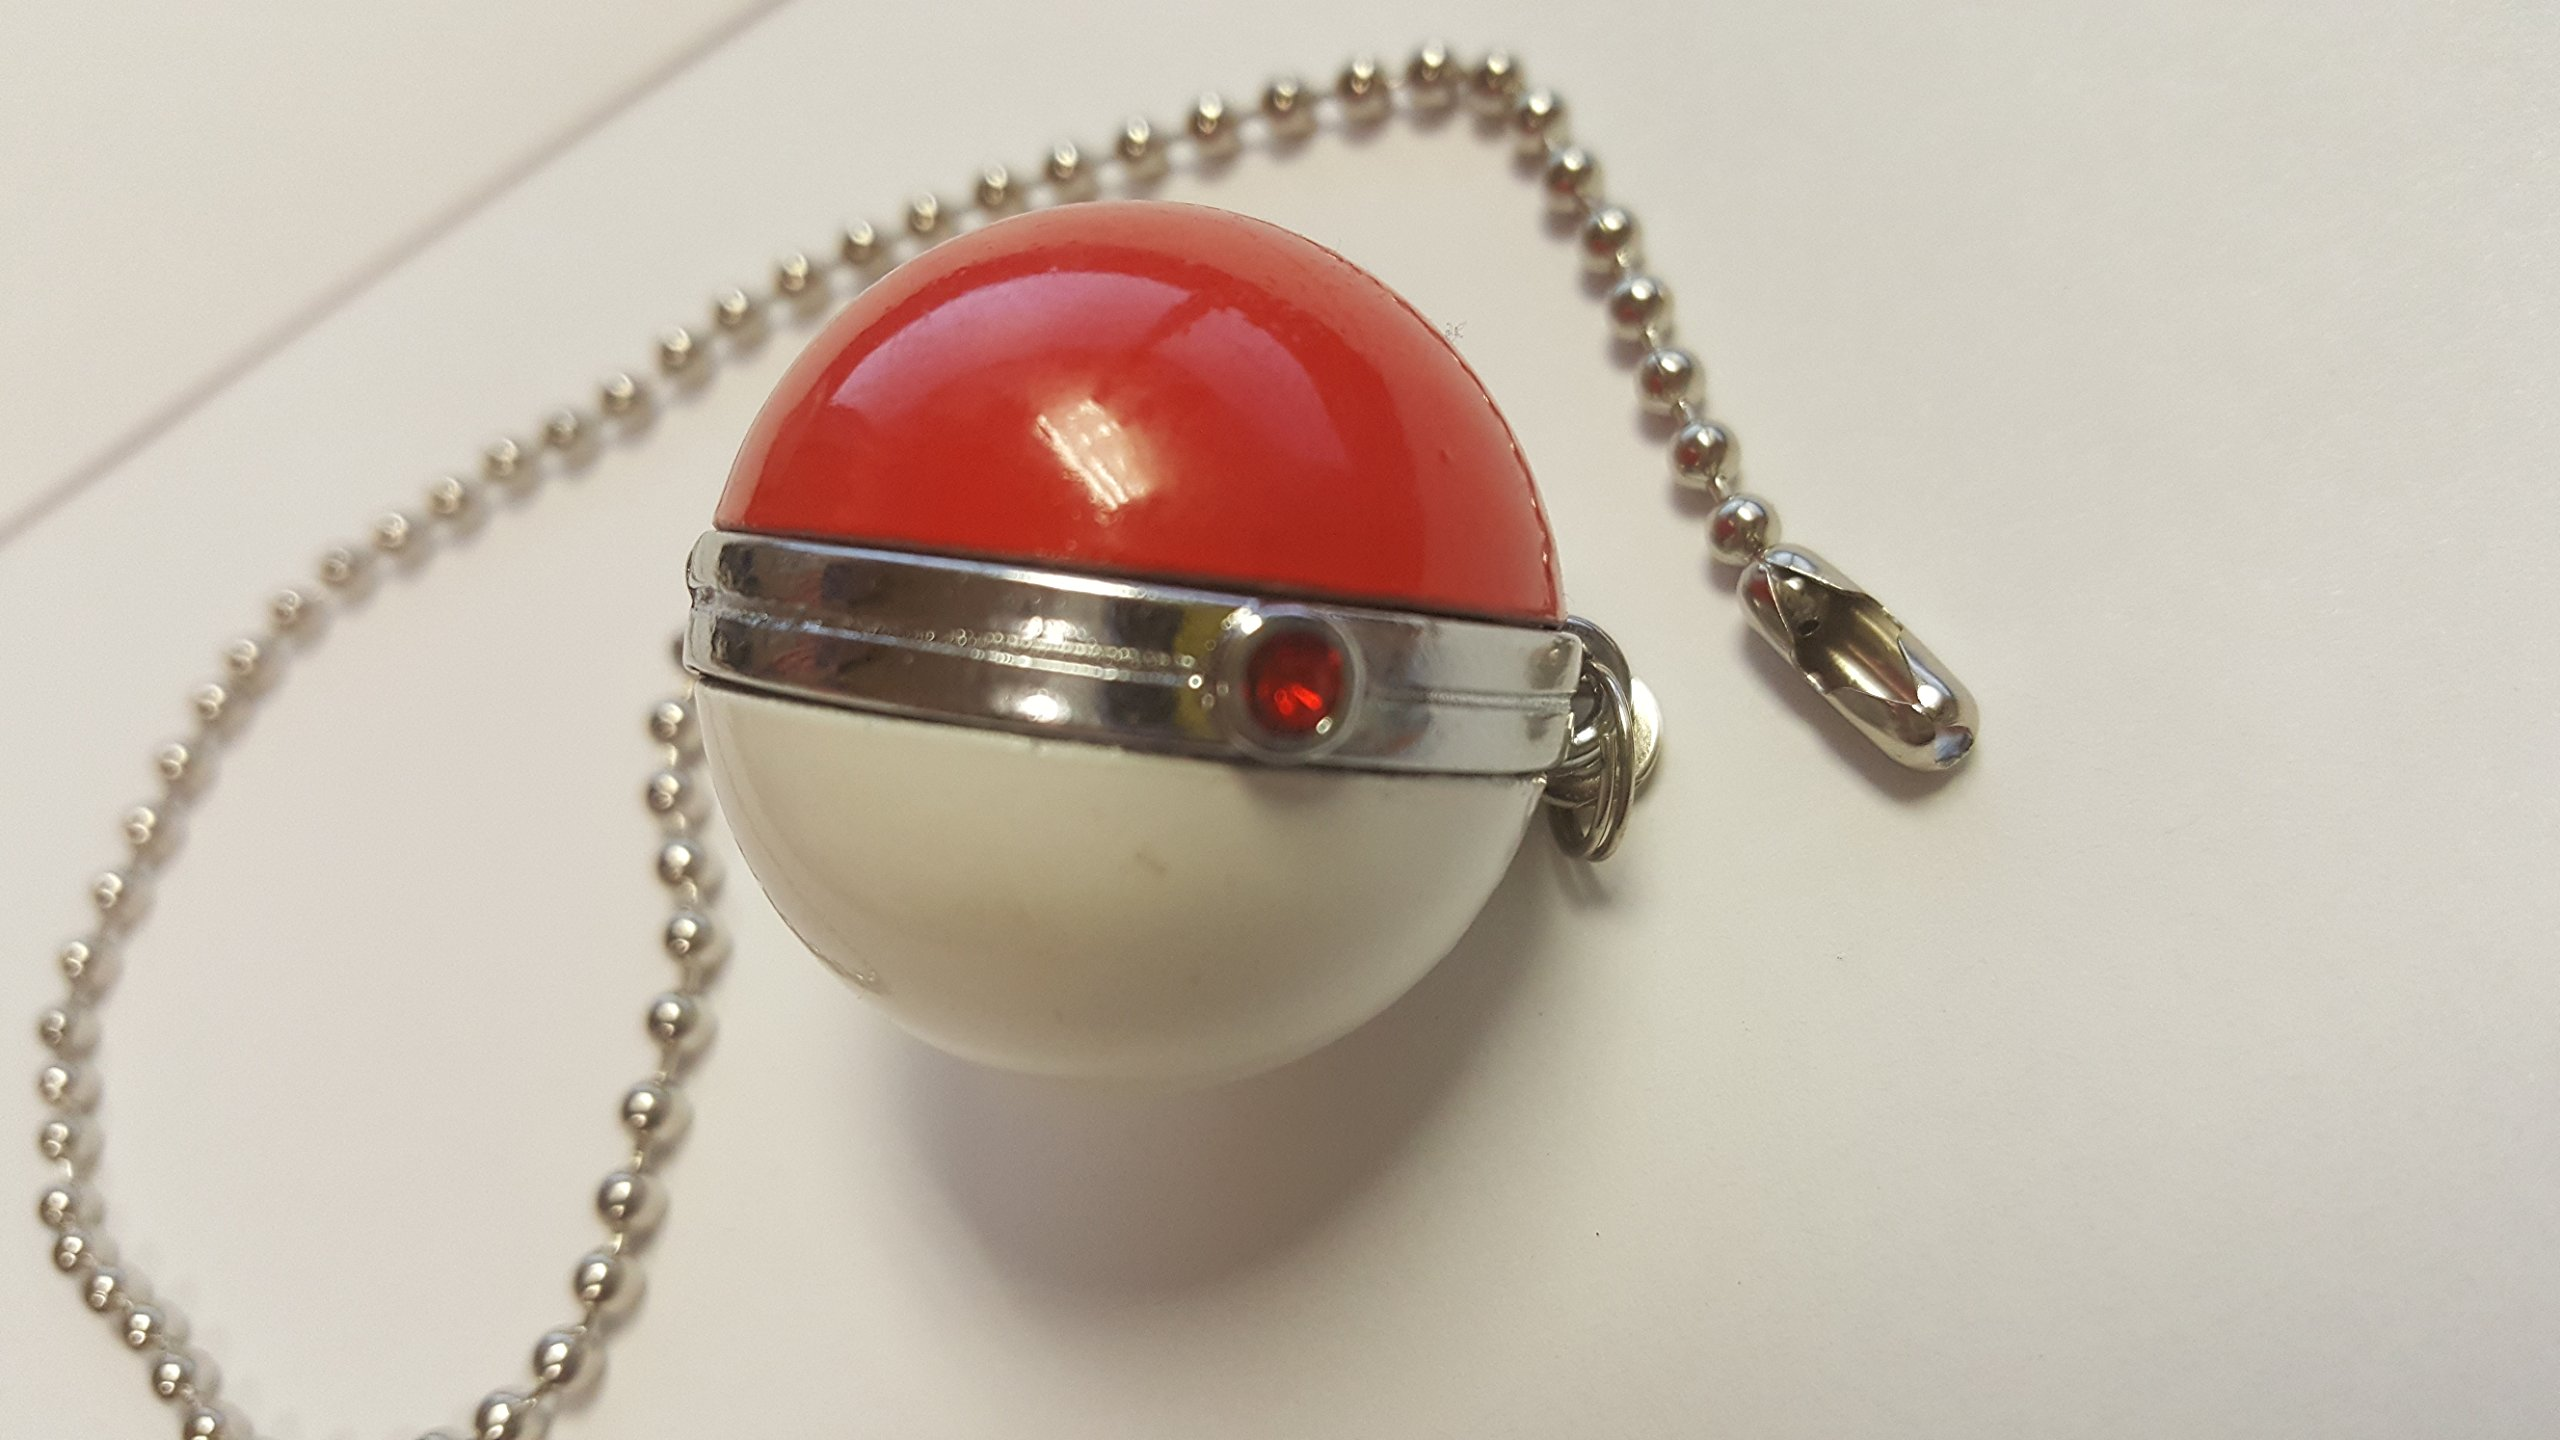 Pokemon PokeBall Ceiling Fan Beaded Pull Chain Red and White with Jewel GO Poke Ball